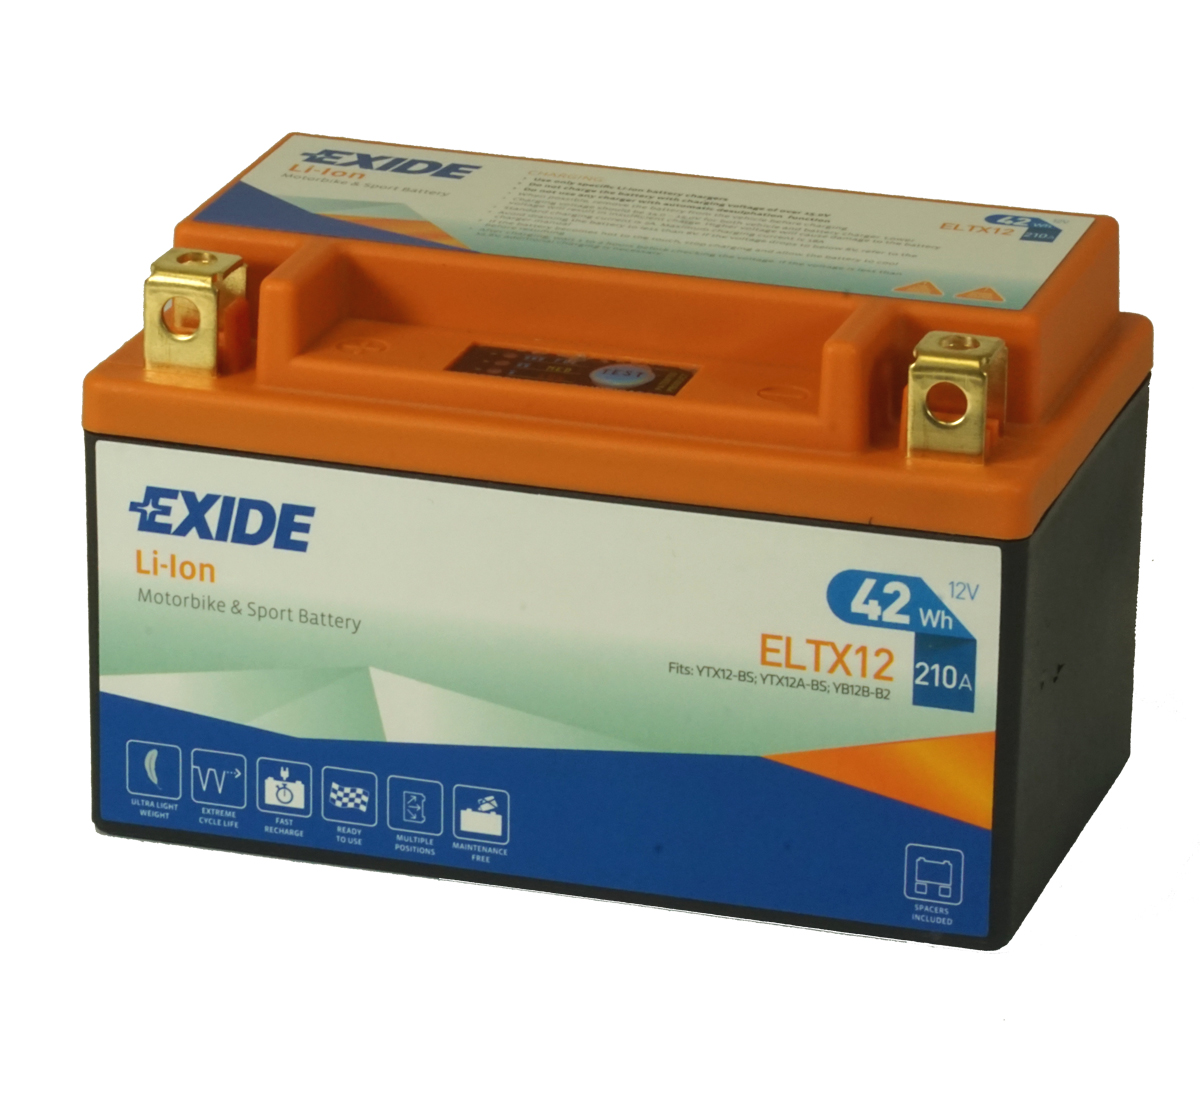 Exide ELTX12 Lithium Motorcycle Battery